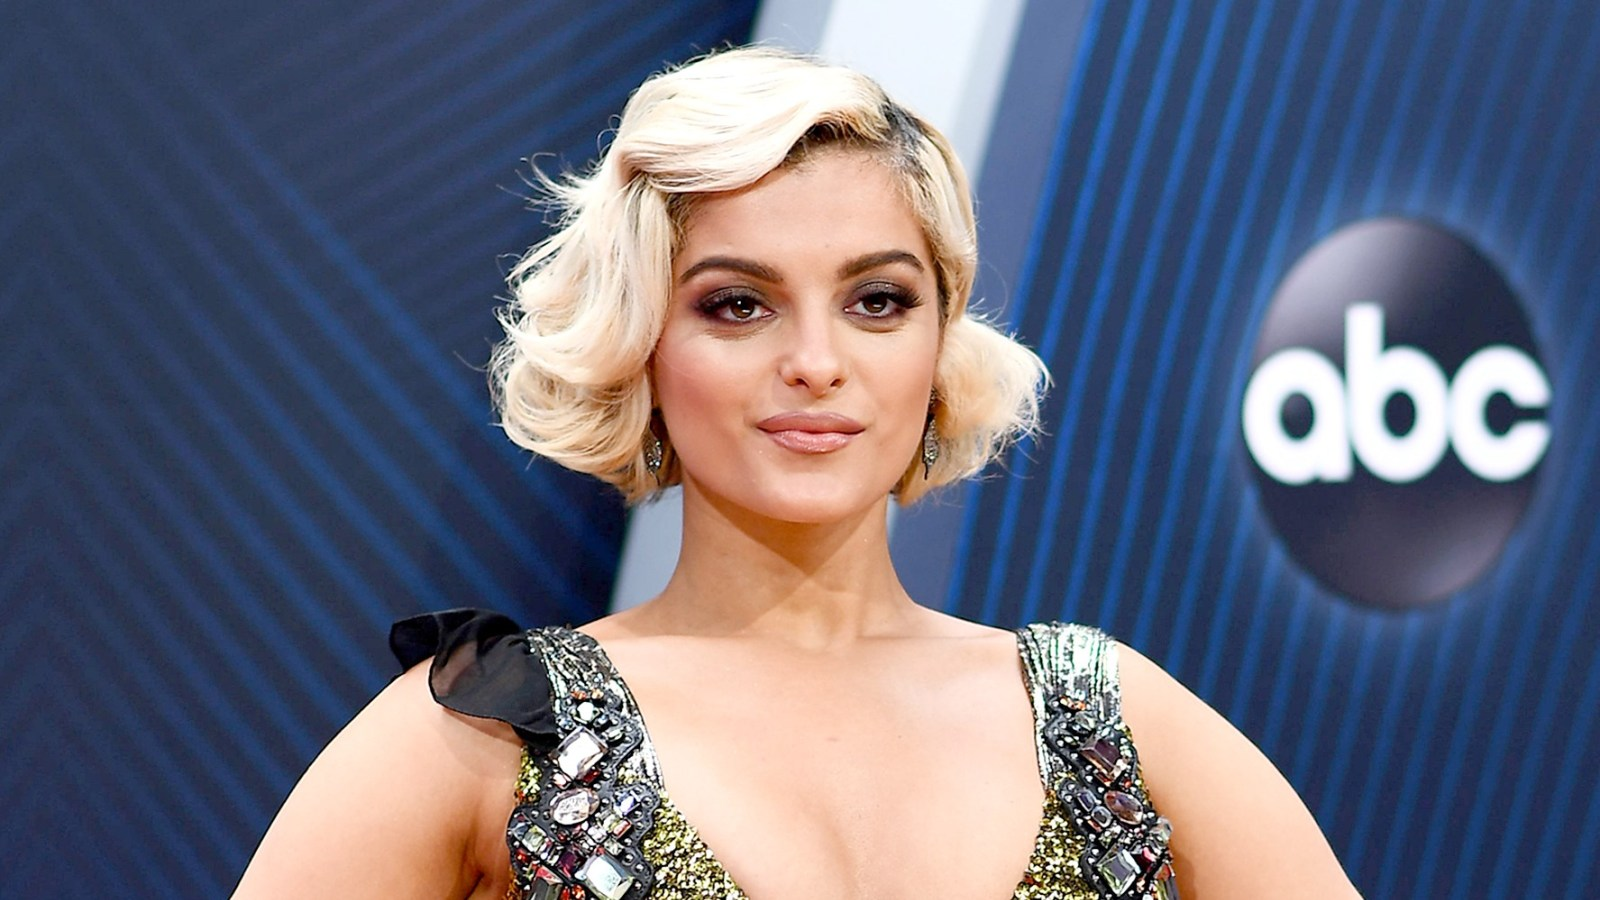 """bebe-rexha-confesses-she-and-her-dad-are-no-longer-on-speaking-terms-after-he-dragged-her-for-her-provocative-posts"""